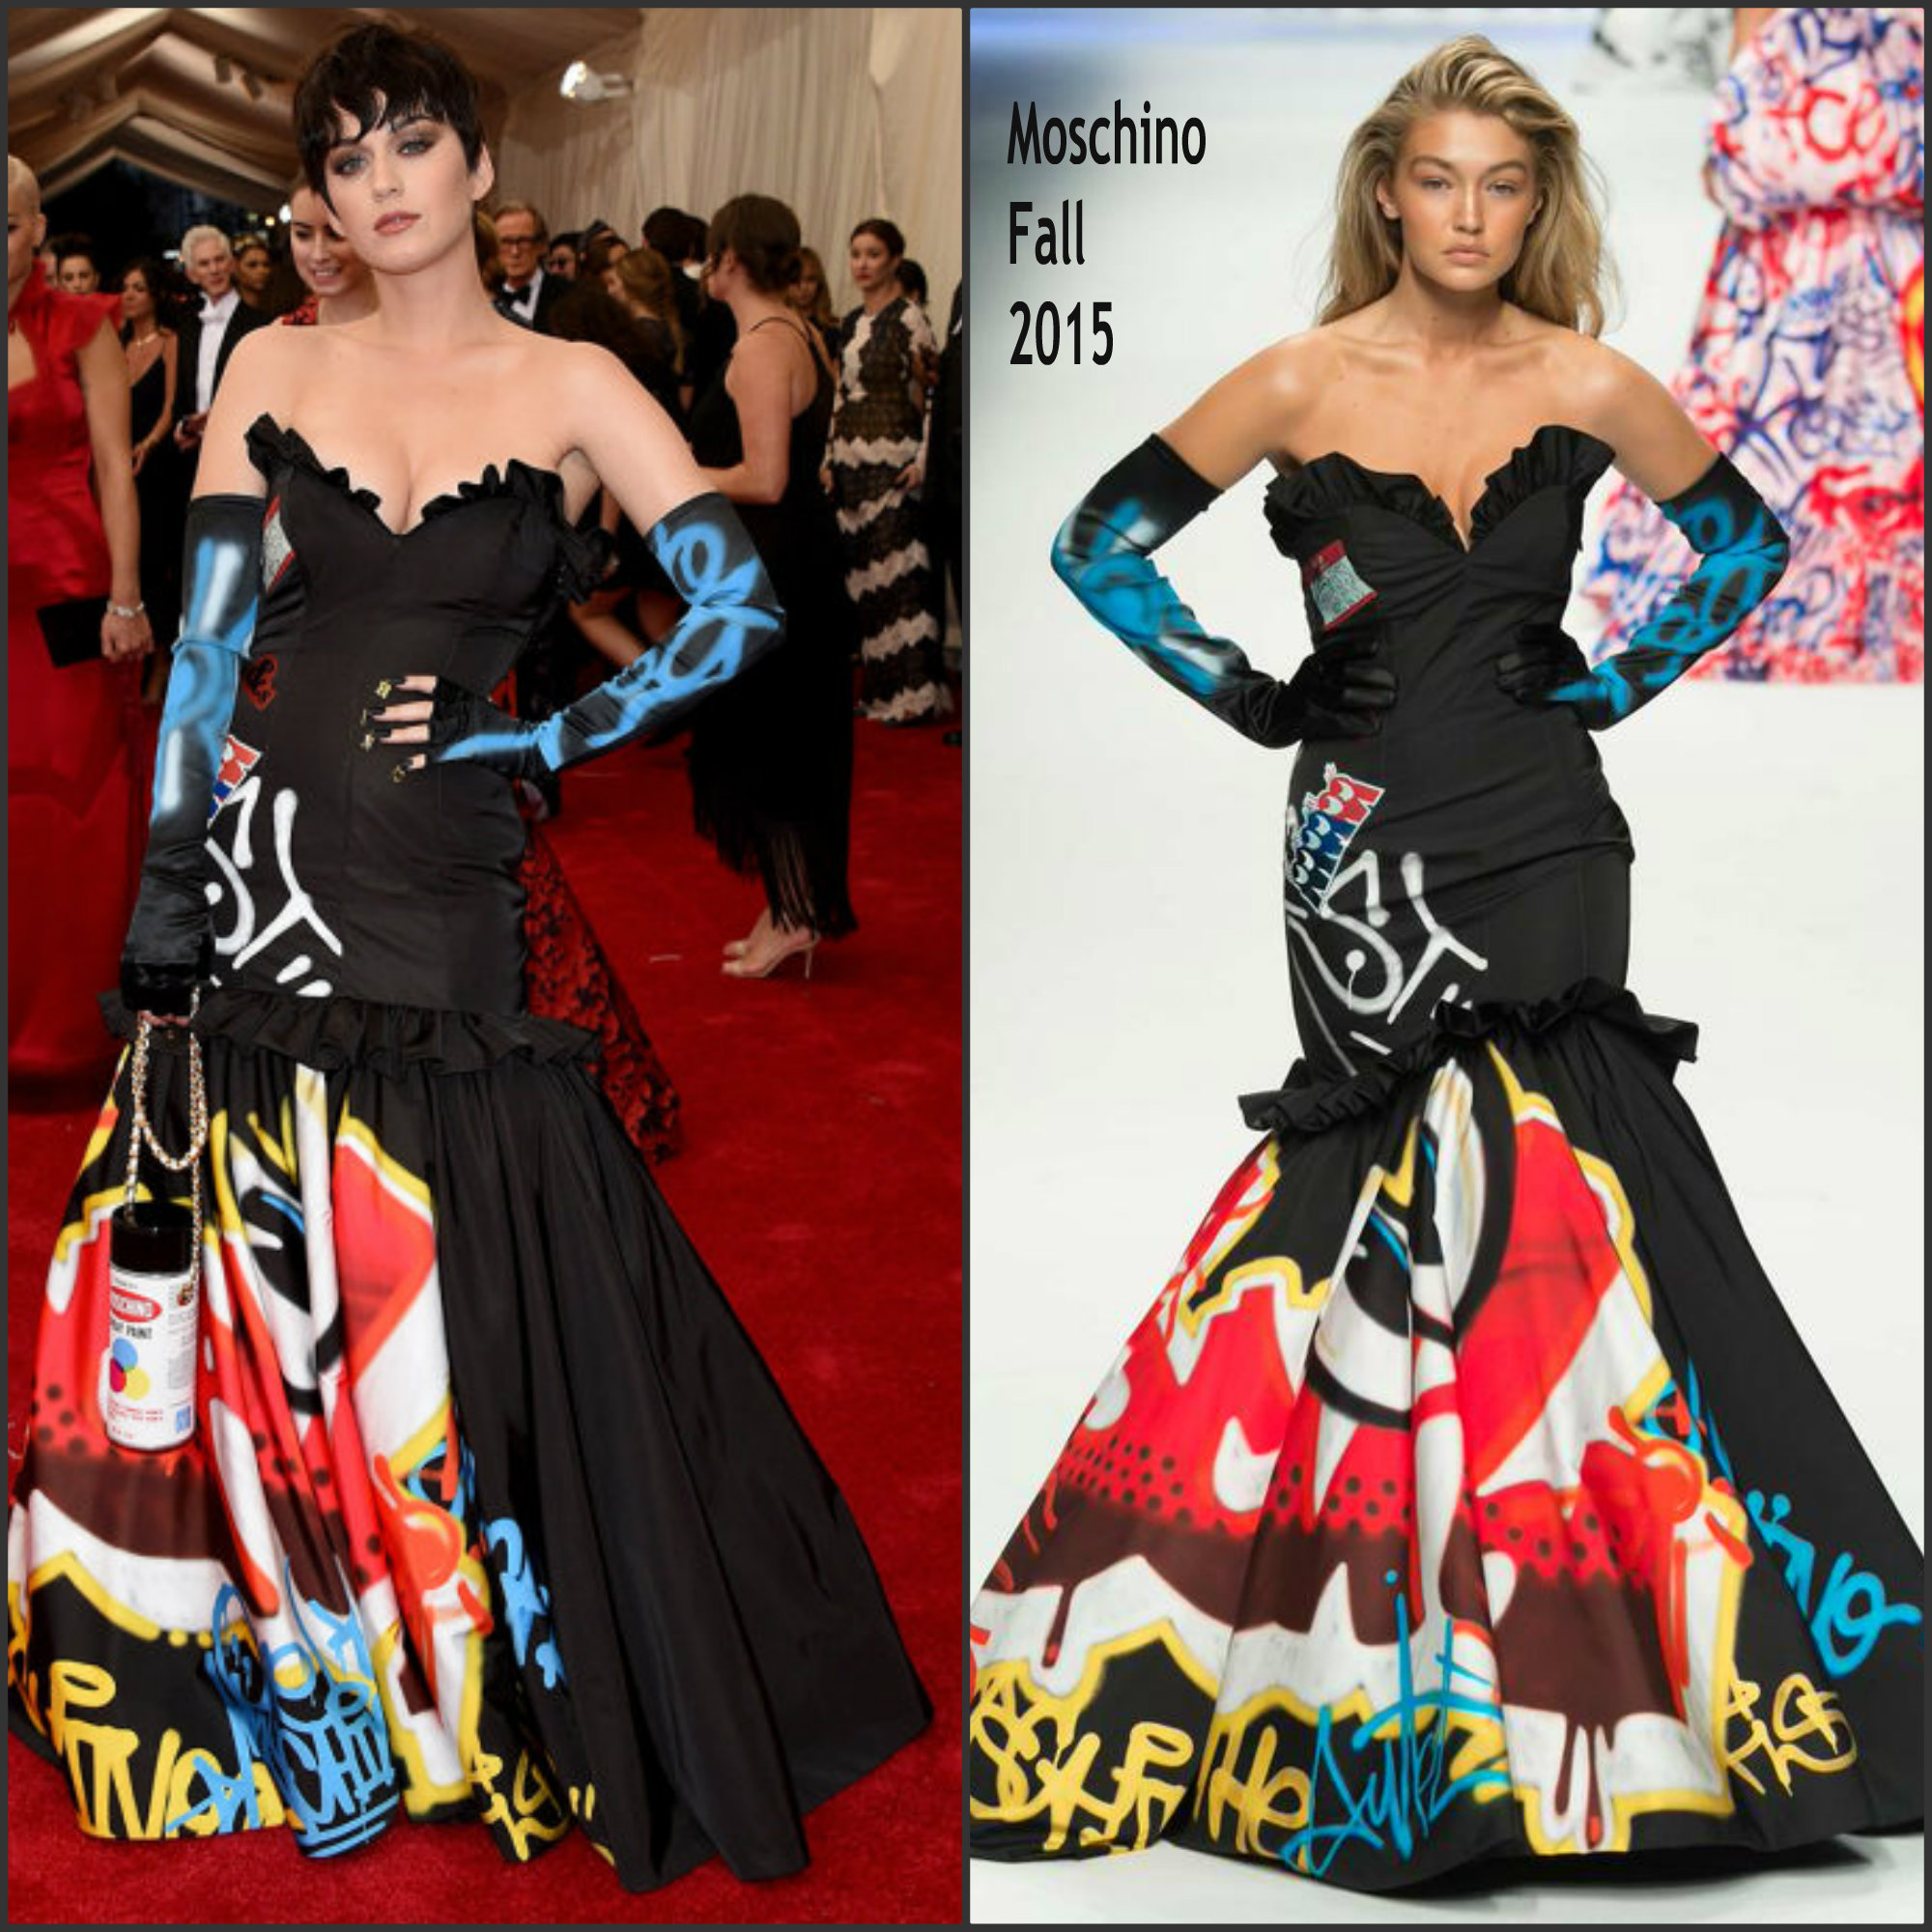 katy-perry-in-moschino-at-the-2015-met-gala